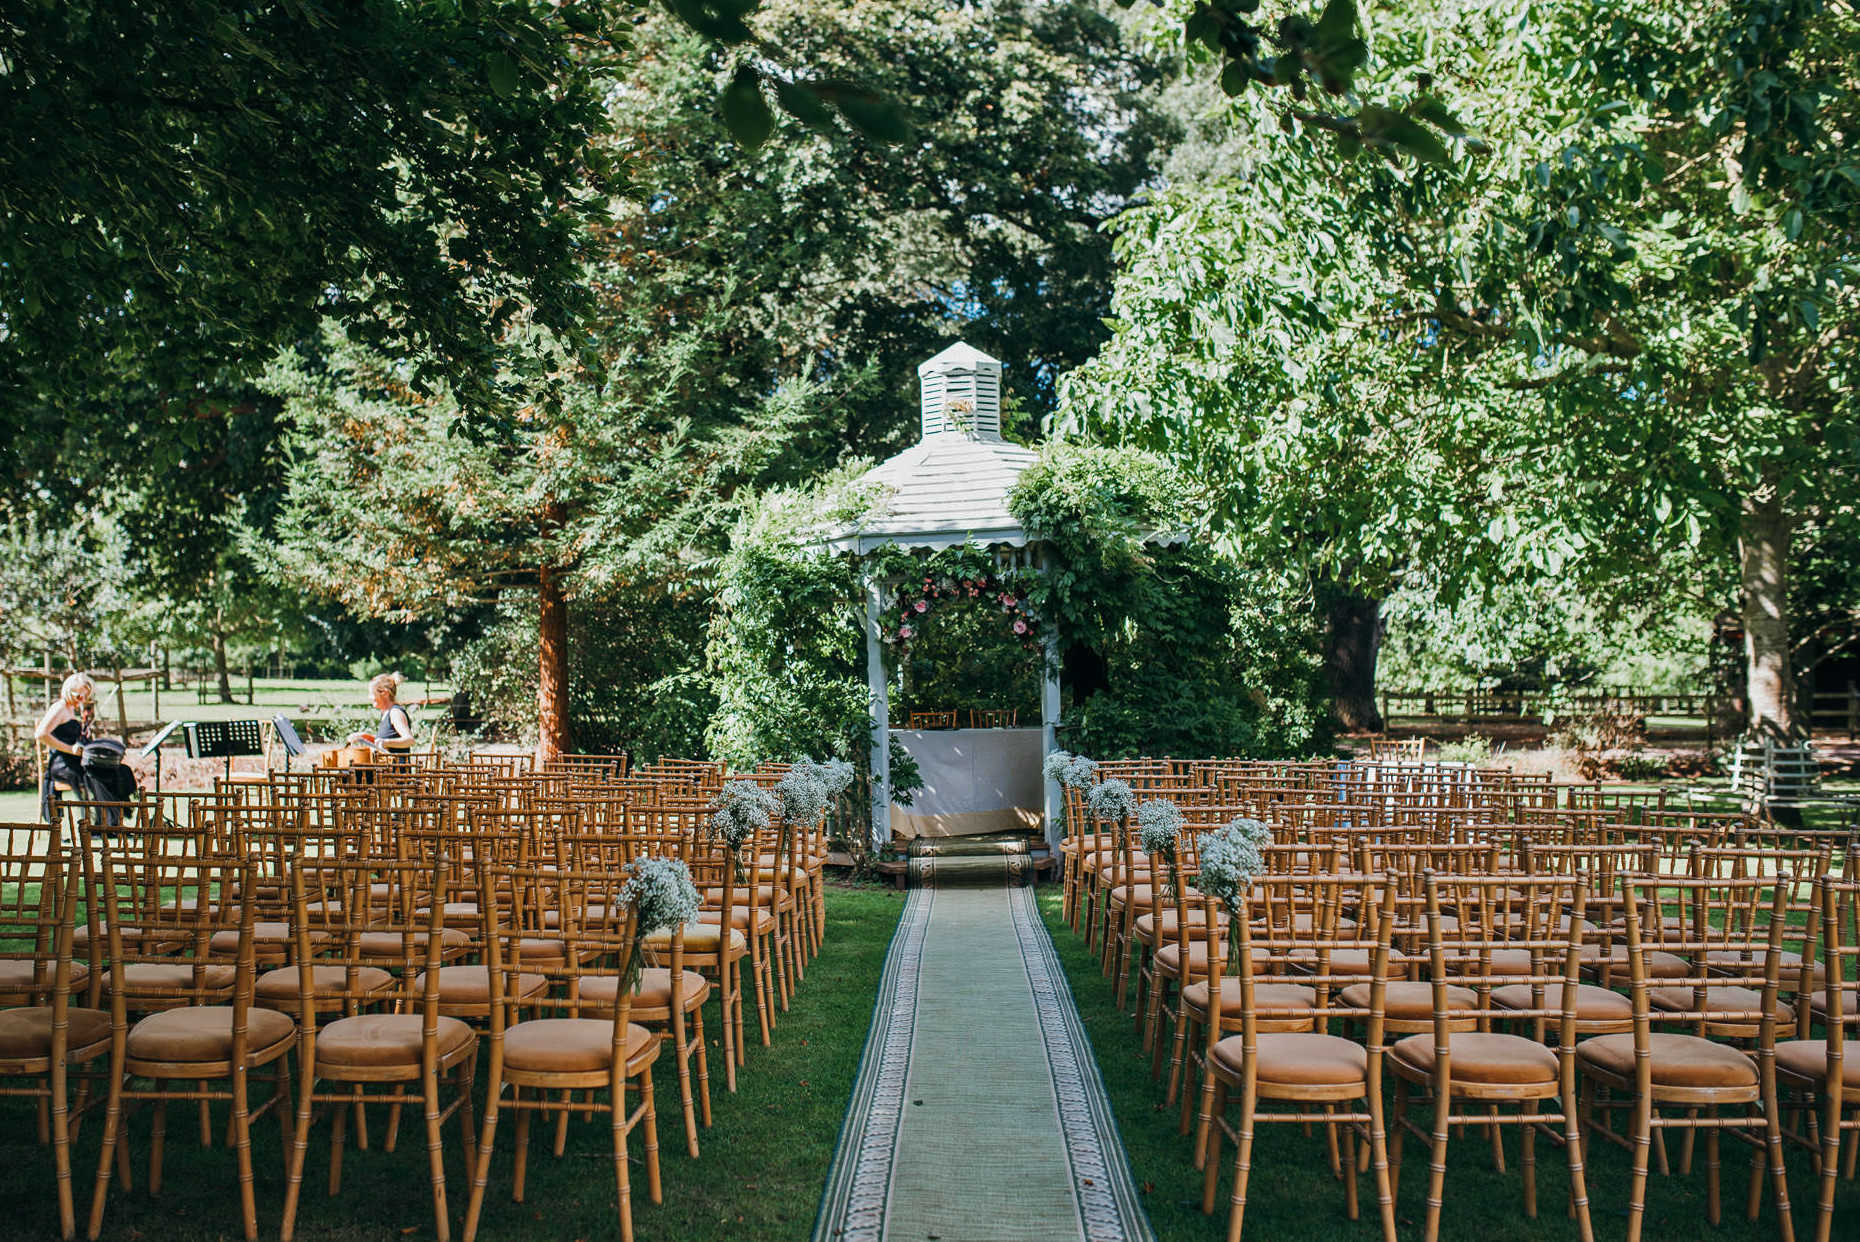 Outdoor wedding cermeony setuop at maunsel house wedding